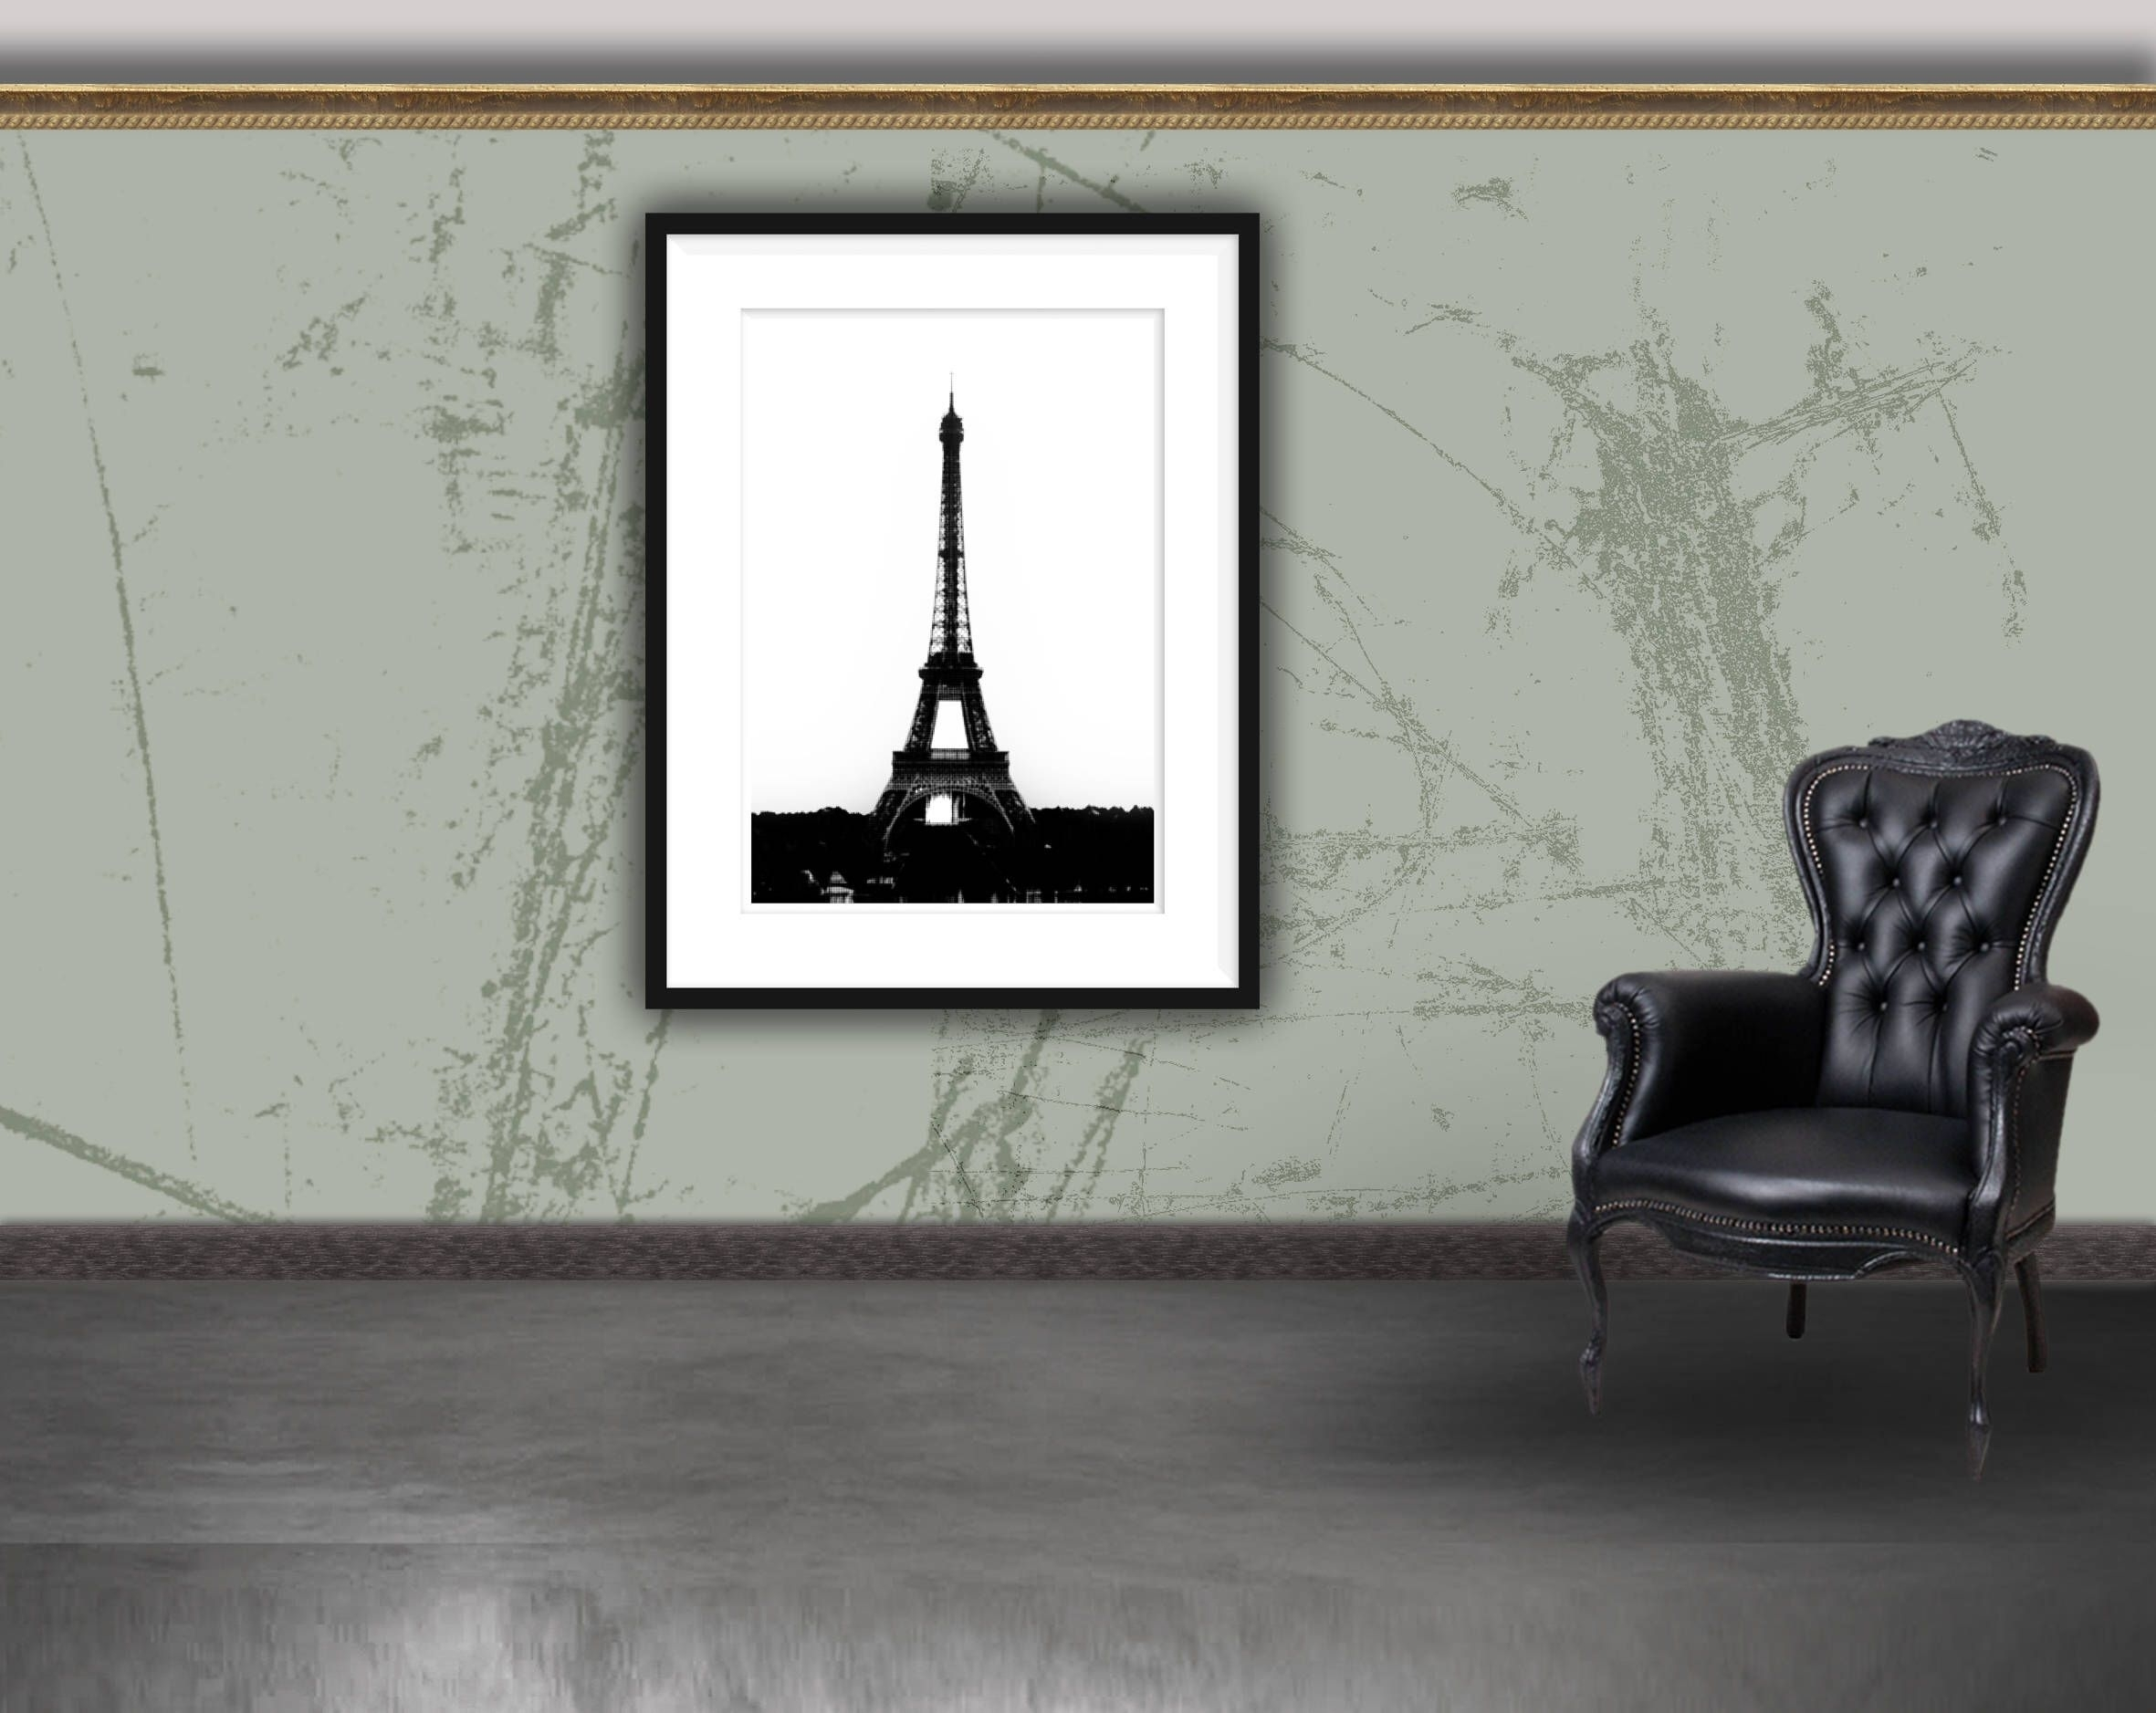 Paris Wall Art | Eiffel Tower Print | Paris Poster | Paris Print With Regard To Most Recently Released Paris Wall Art (View 6 of 15)